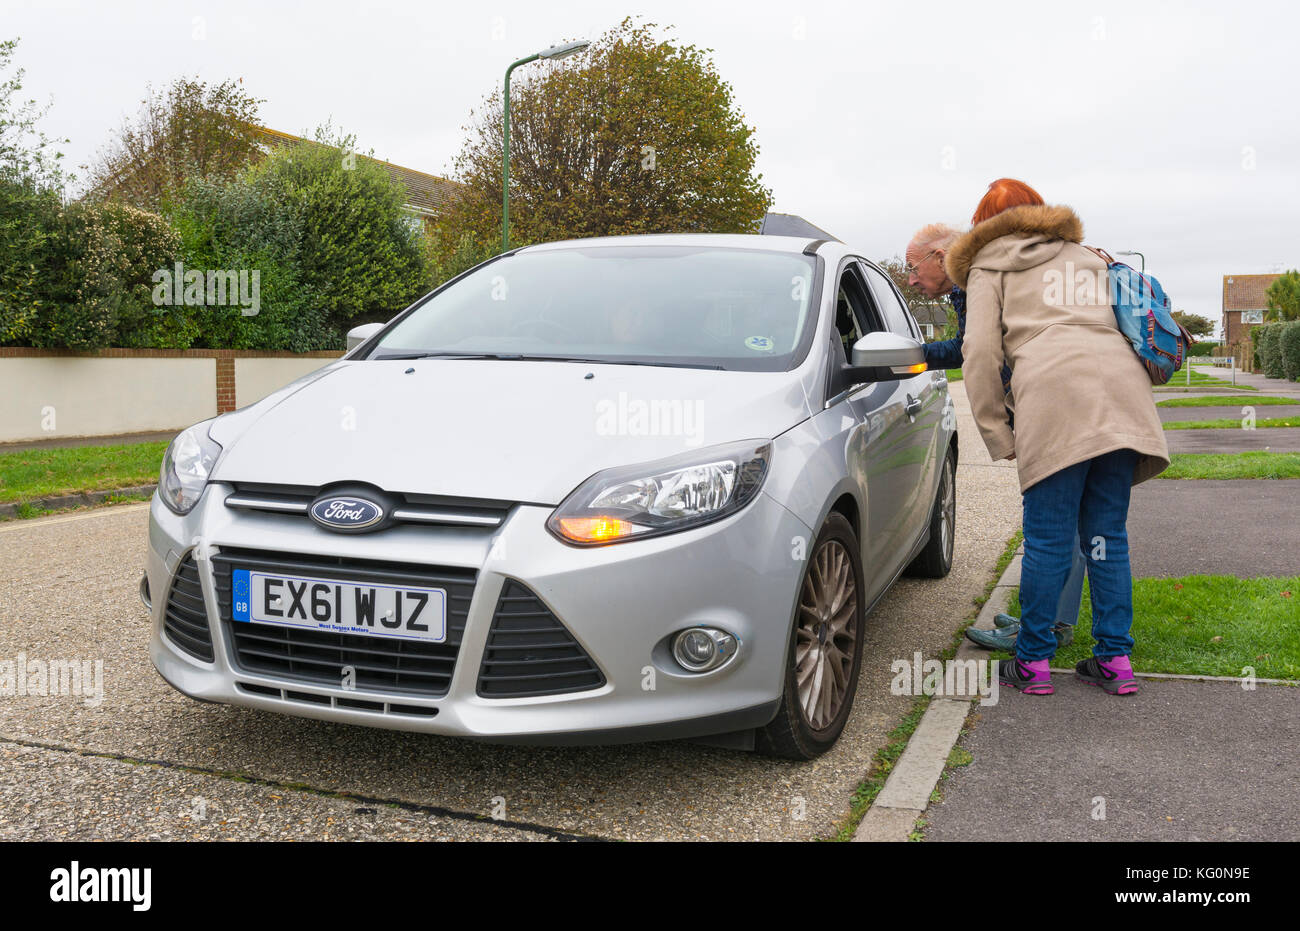 Car driver stopping to ask for directions in the UK. - Stock Image